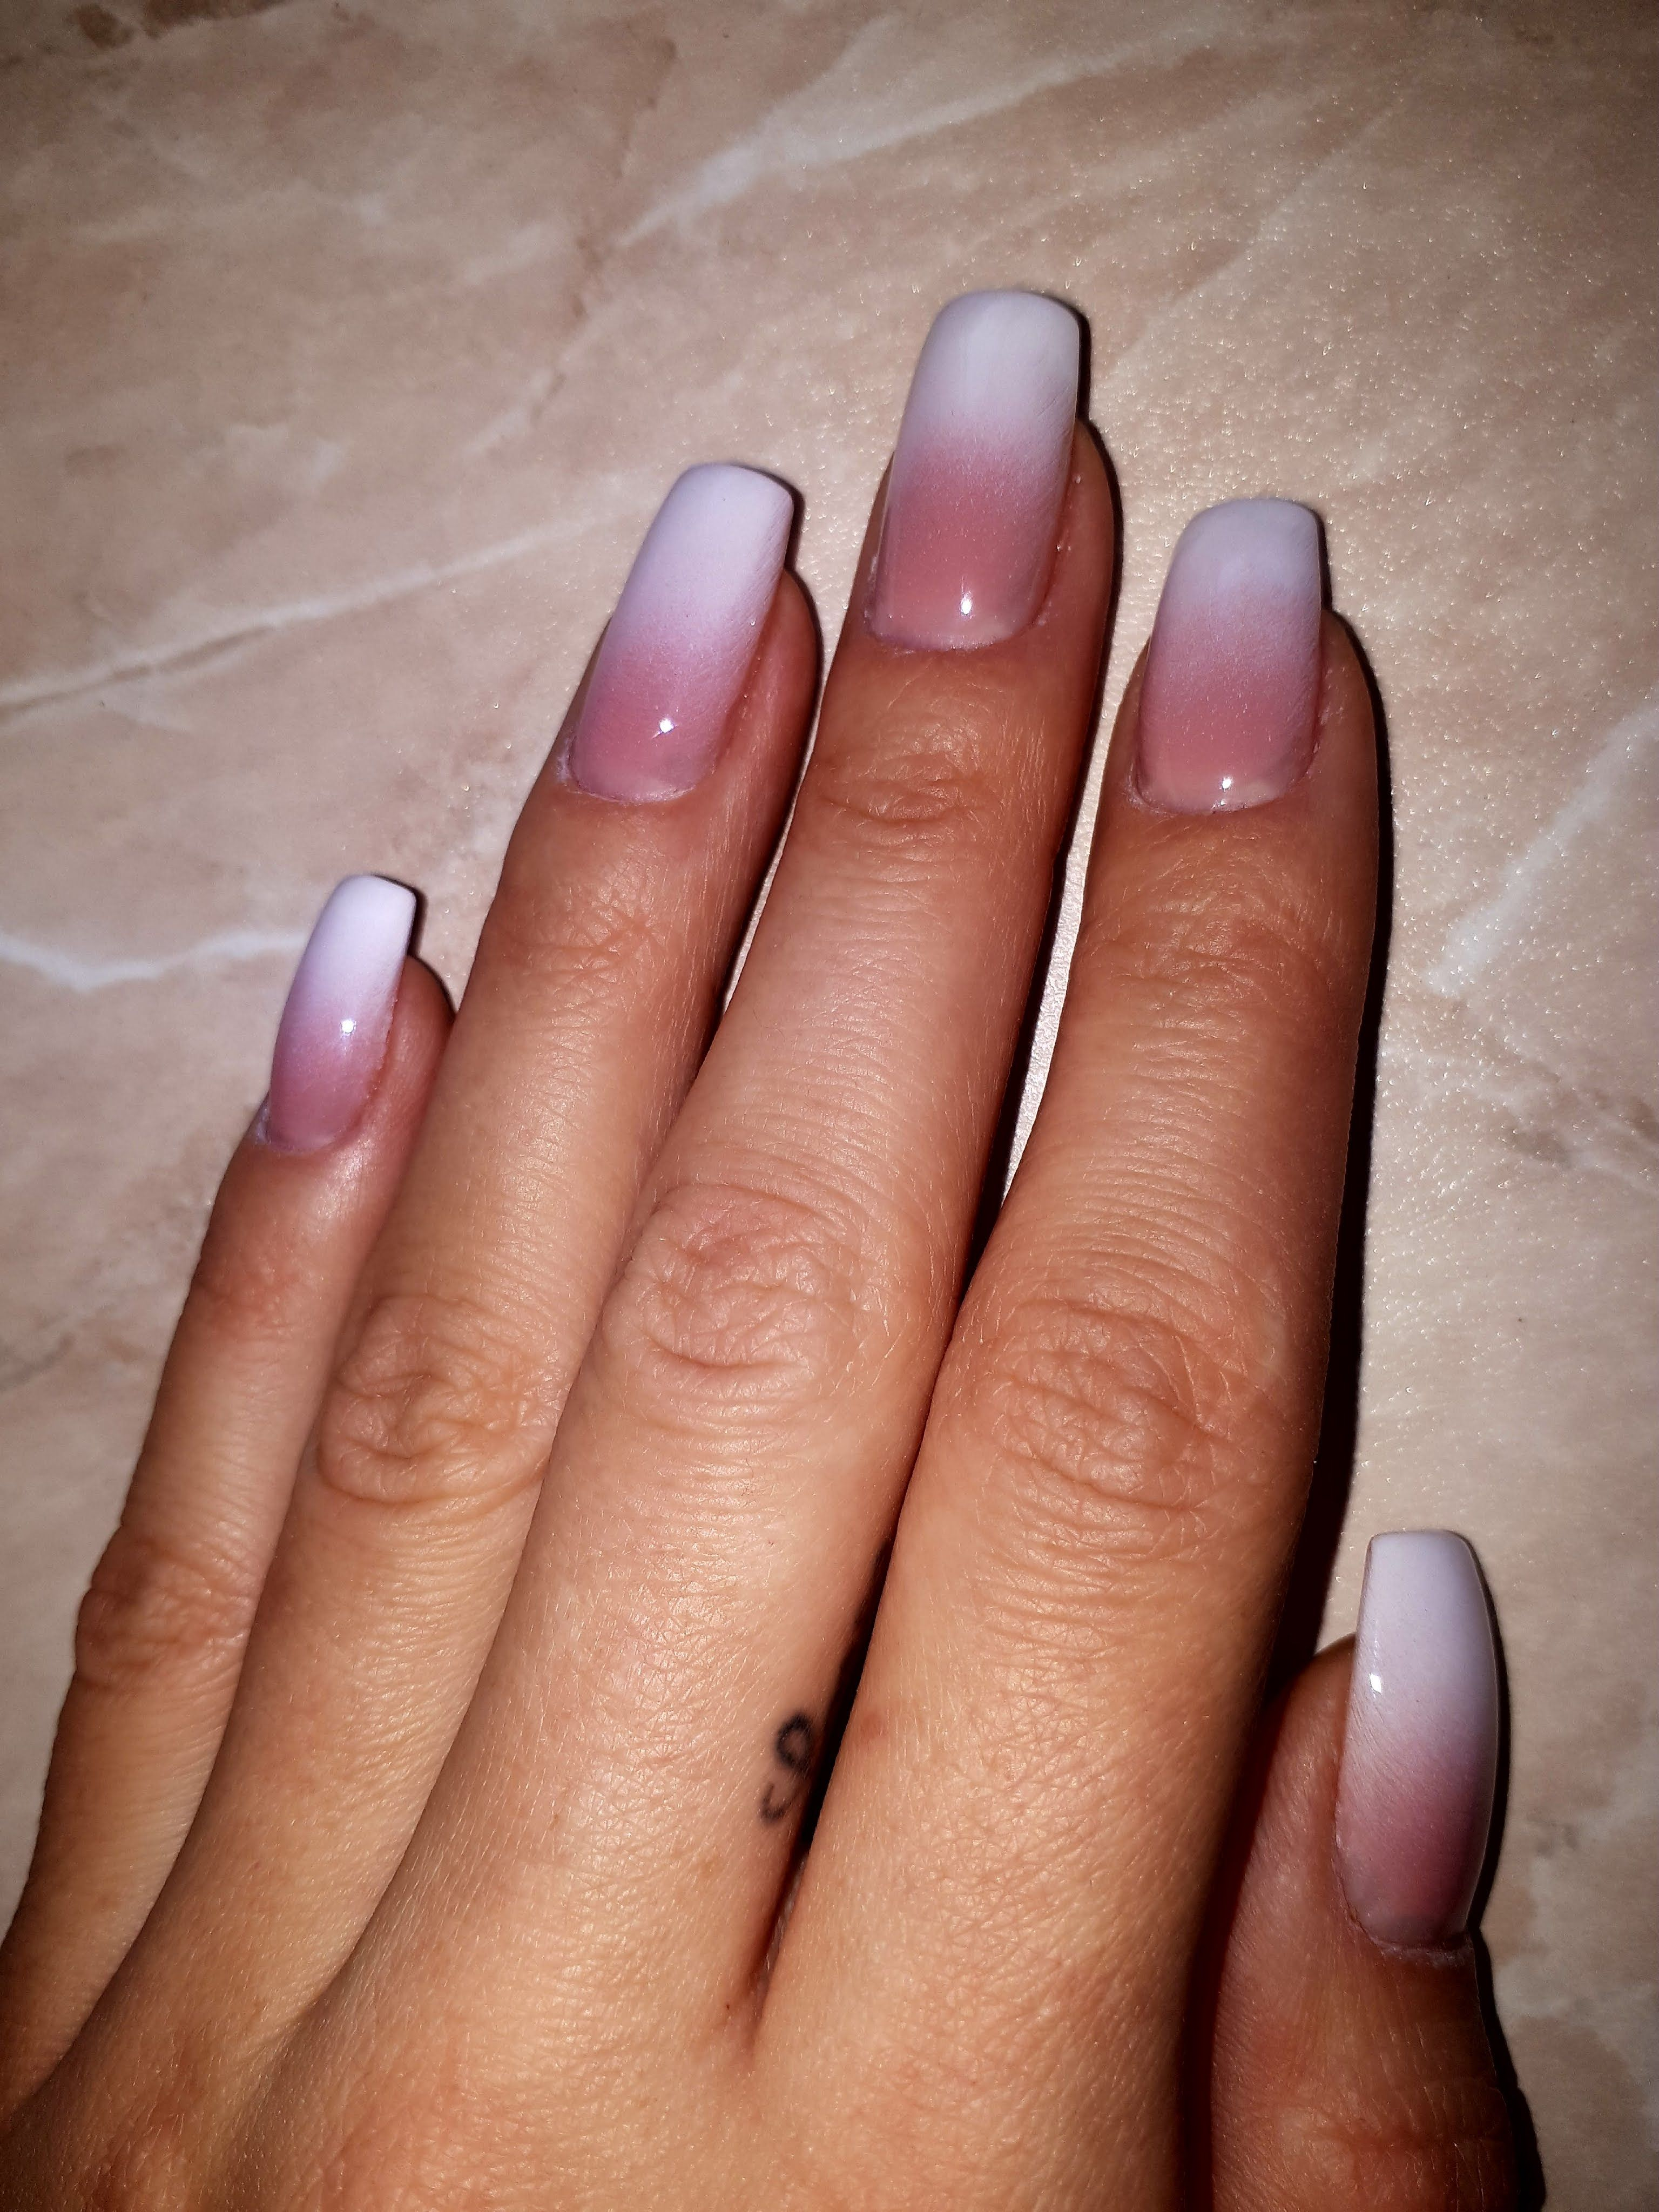 Ombre French white nails | nails | Pinterest | Ombre french, White ...